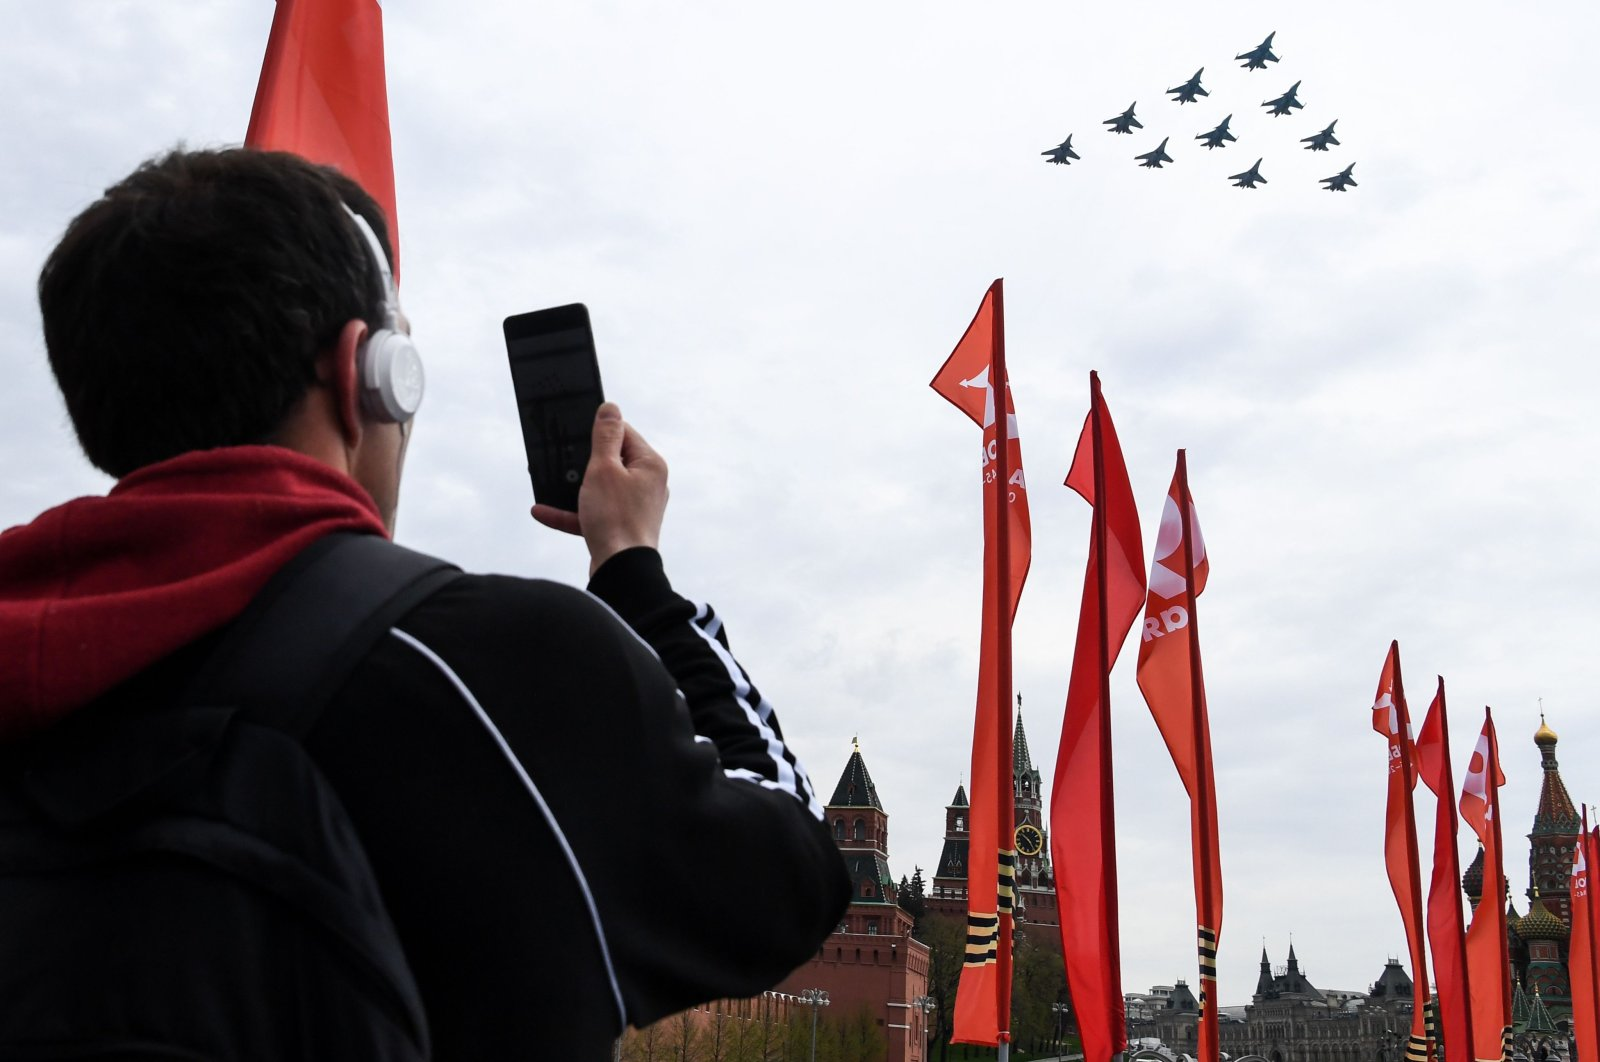 A man takes pictures with his mobile phone of Russian Su-34 fighter bombers, Su-30M jet fighters and Su-35 jet fighters flying over the Red Square during a rehearsal for the Victory Day military parade in Moscow on May 4, 2020. (AFP Photo)